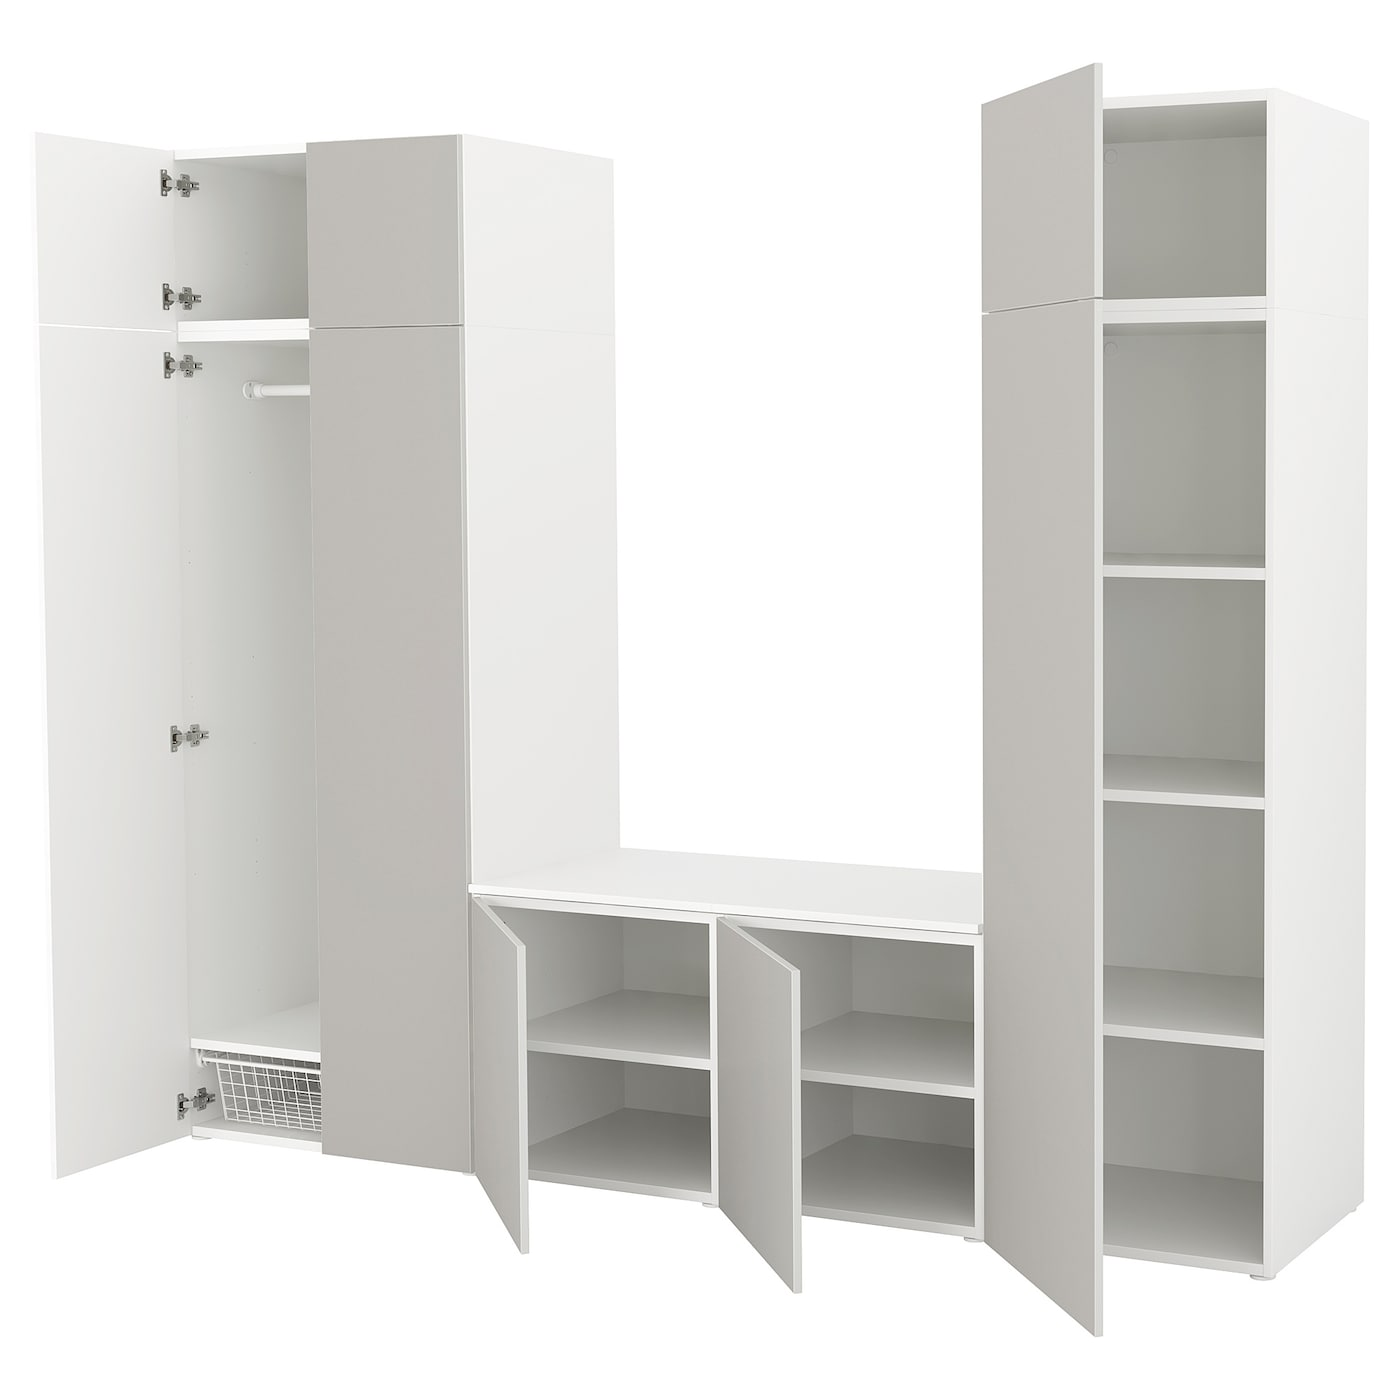 modular wardrobes platsa wardrobes ikea. Black Bedroom Furniture Sets. Home Design Ideas